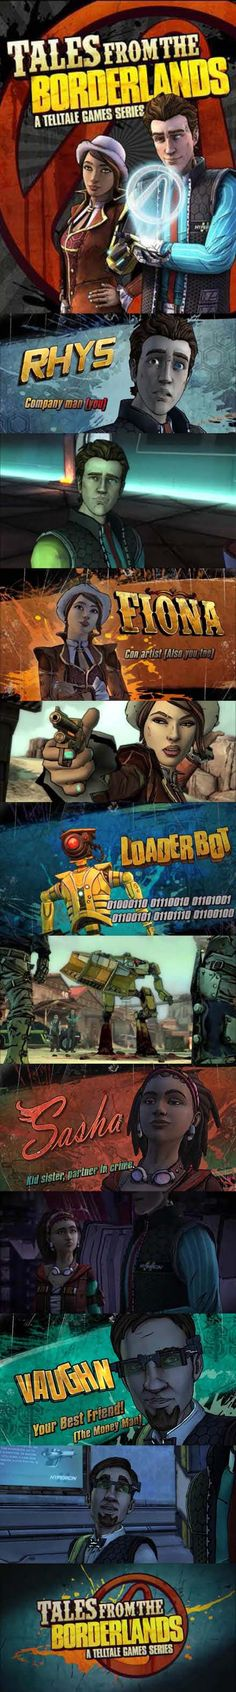 Tales from the #Borderlands is brilliant and uniquely Borderlands! http://www.levelgamingground.com/tales-for-the-borderlands-review.html